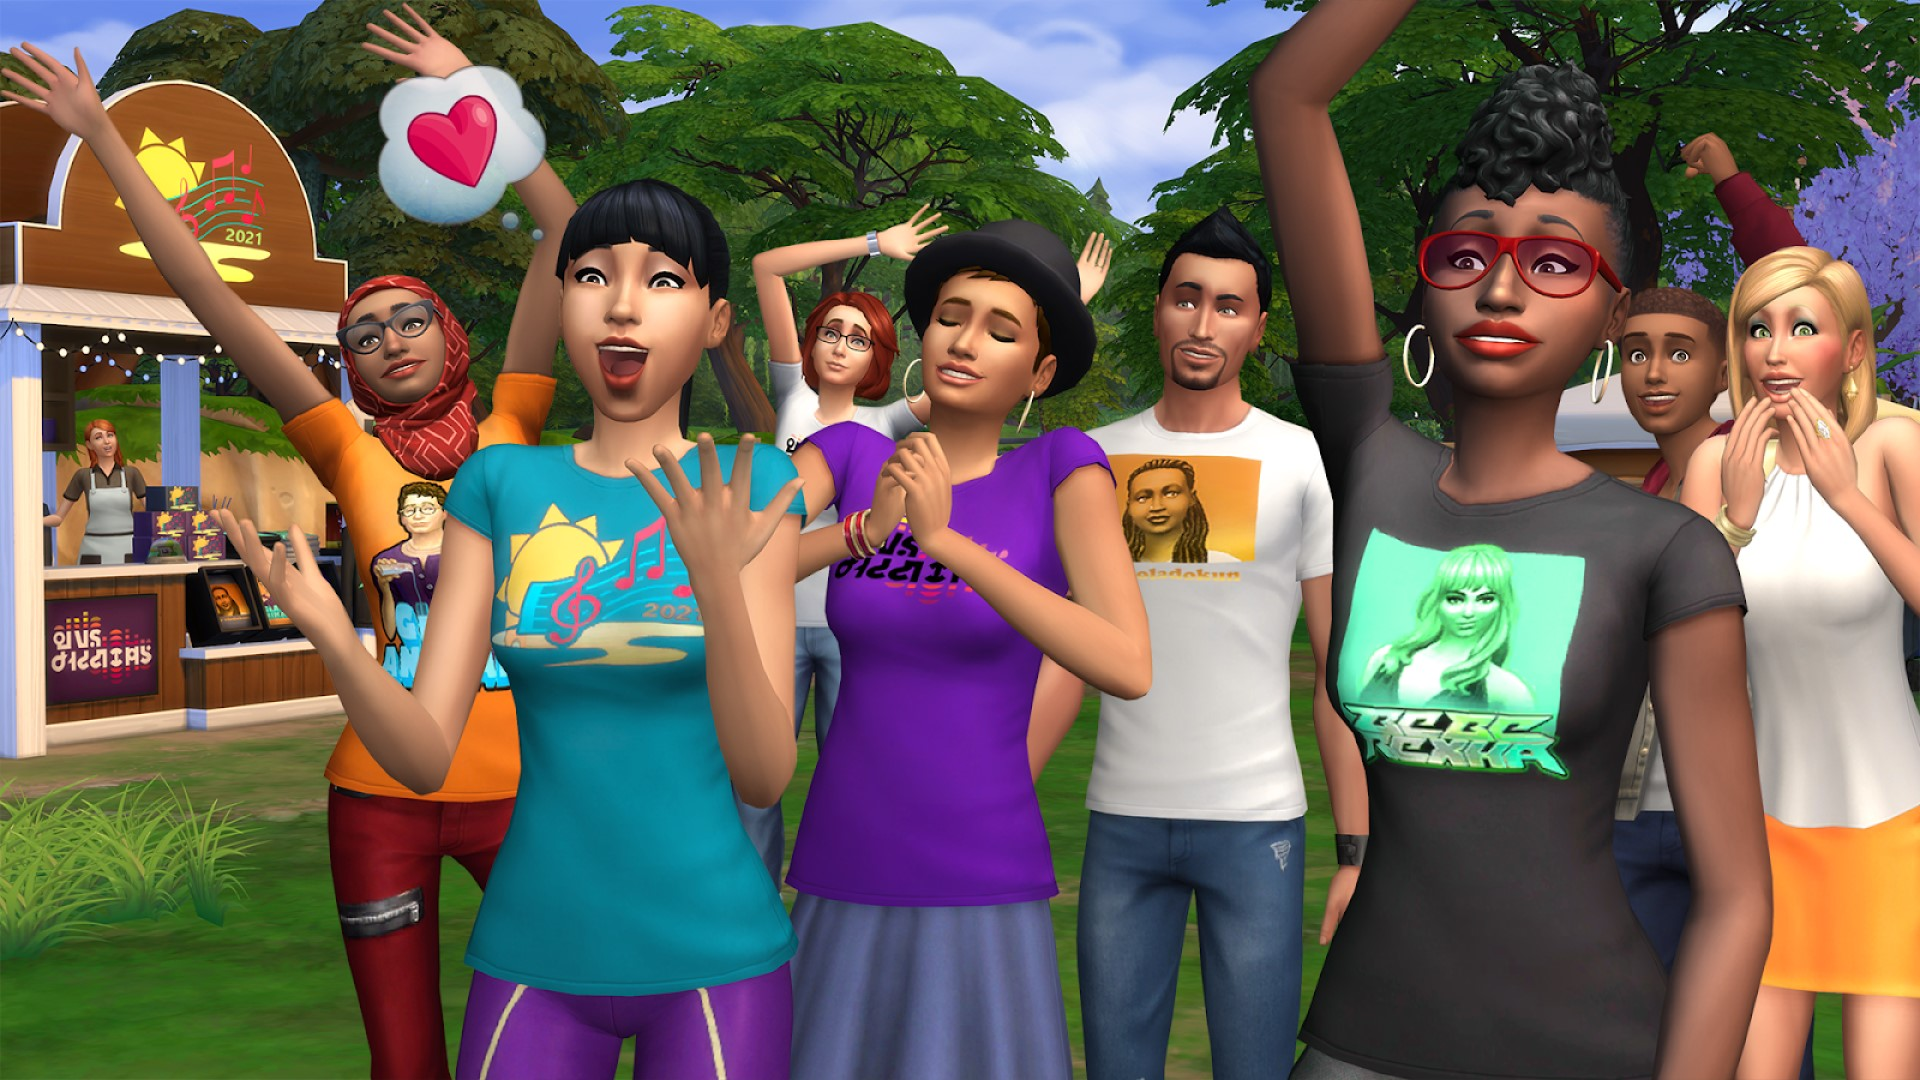 The Sims 4 will host a music festival with Bebe Rexha next week